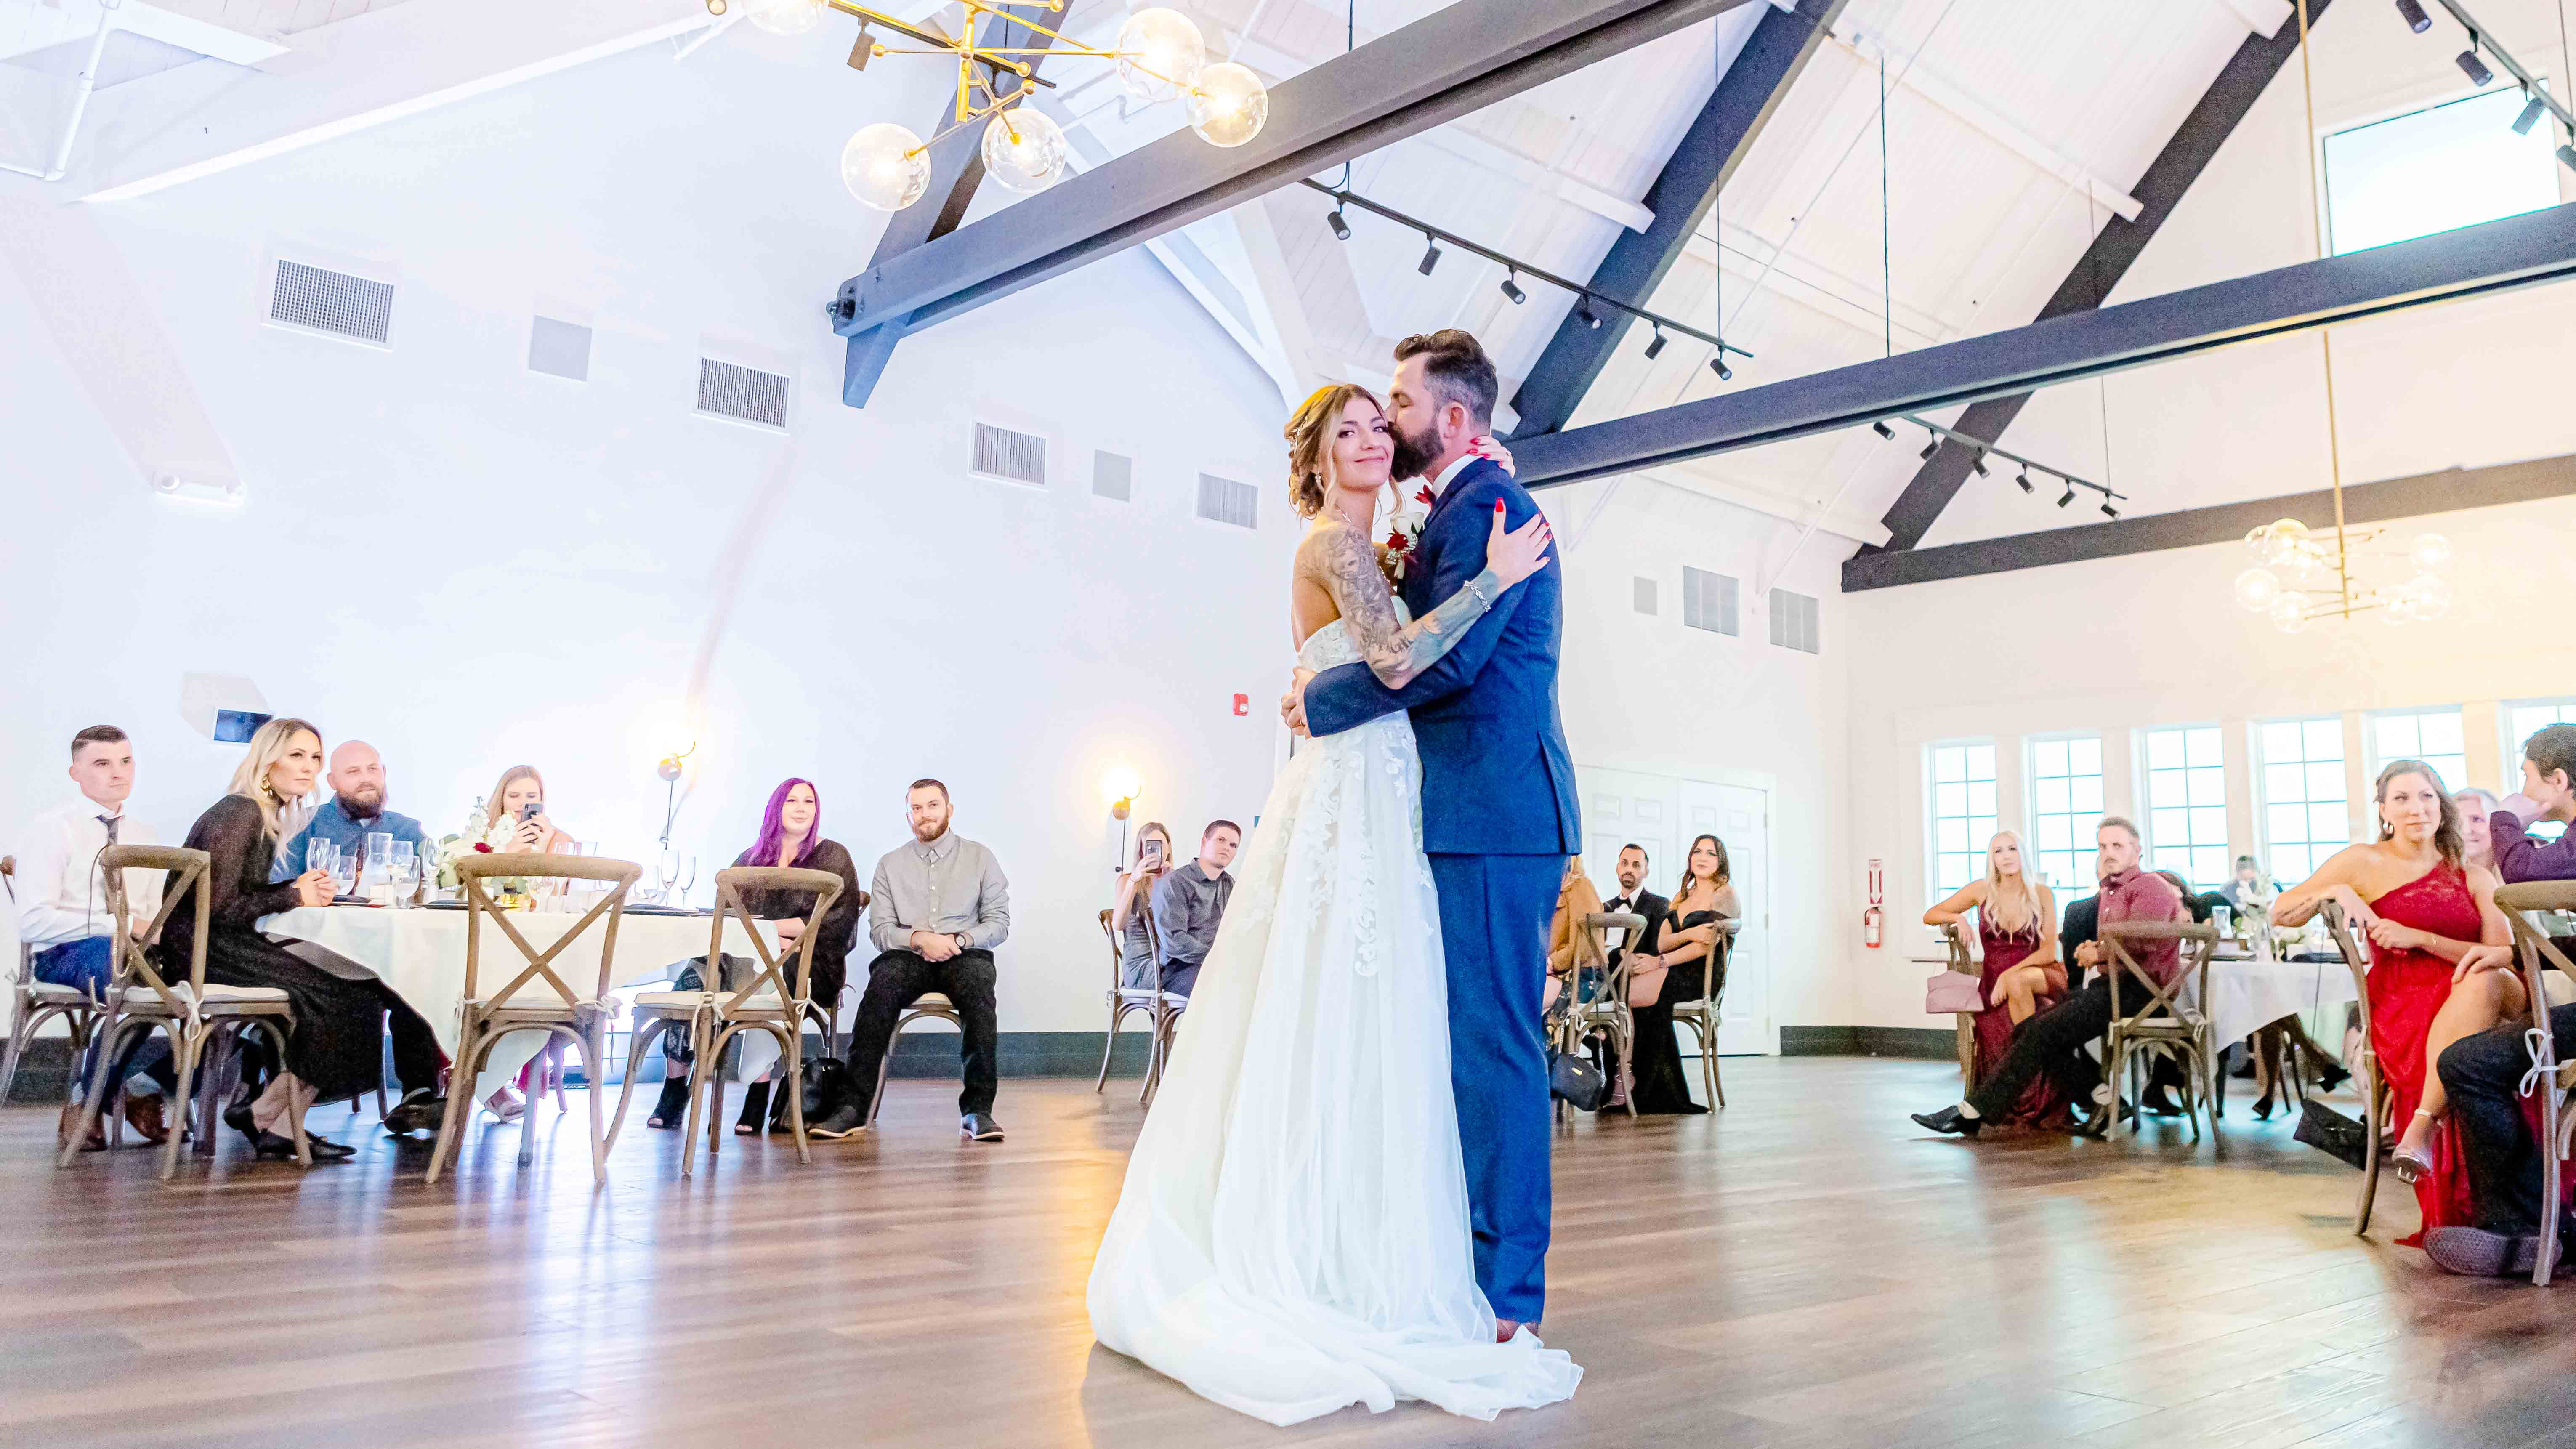 A Beautiful First Dance - Aaron & Lynnea's Wedding